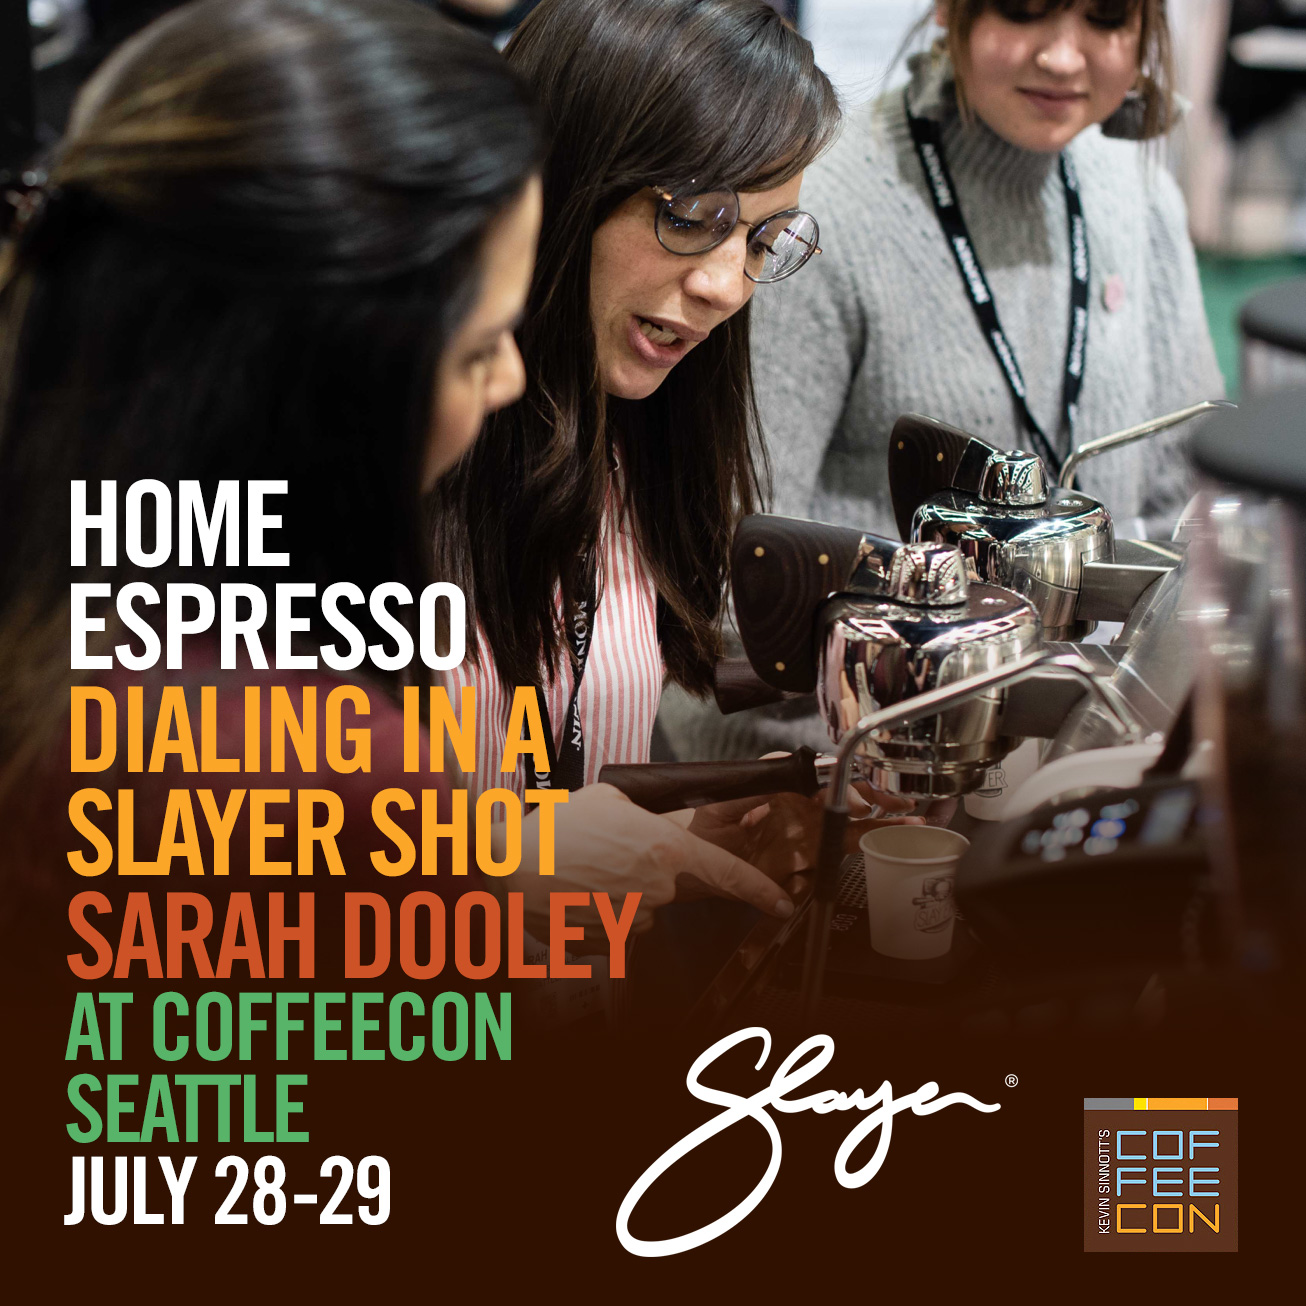 Home Espresso Dialing in A Slayer Shot Sarah Dooley